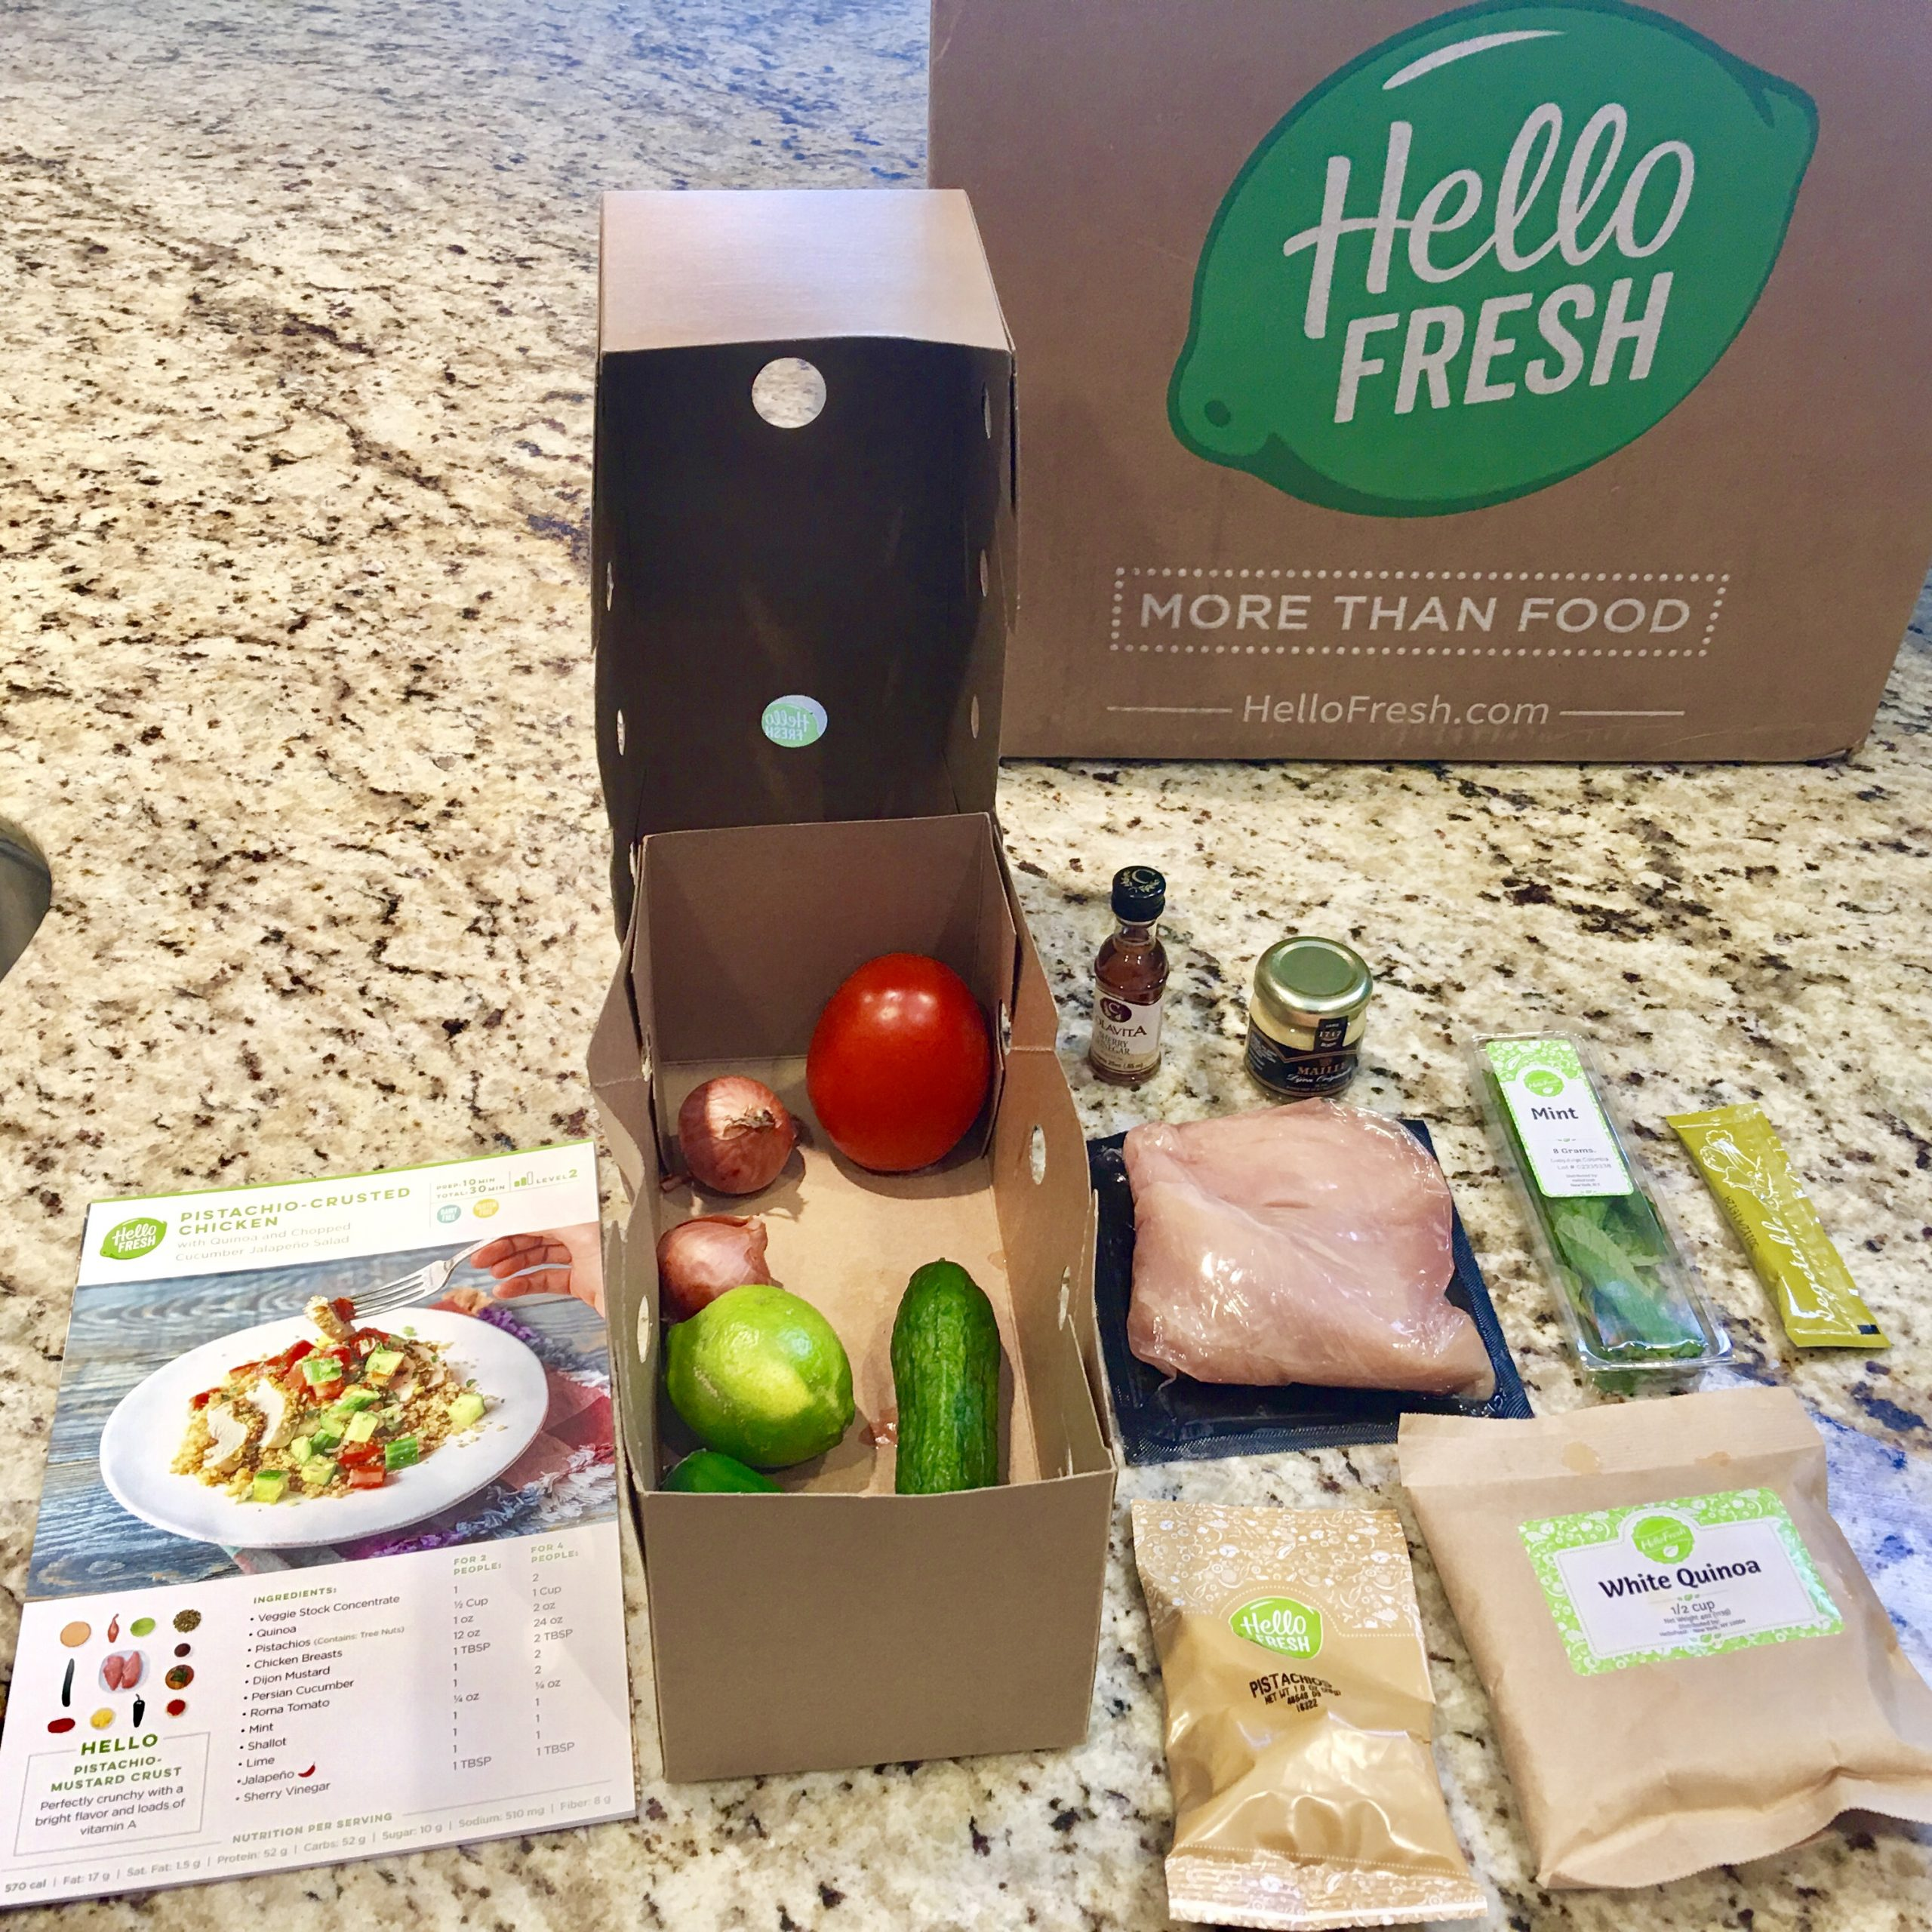 Meal Kit Delivery Service Hellofresh  Outlet Coupon Promo Code April 2020